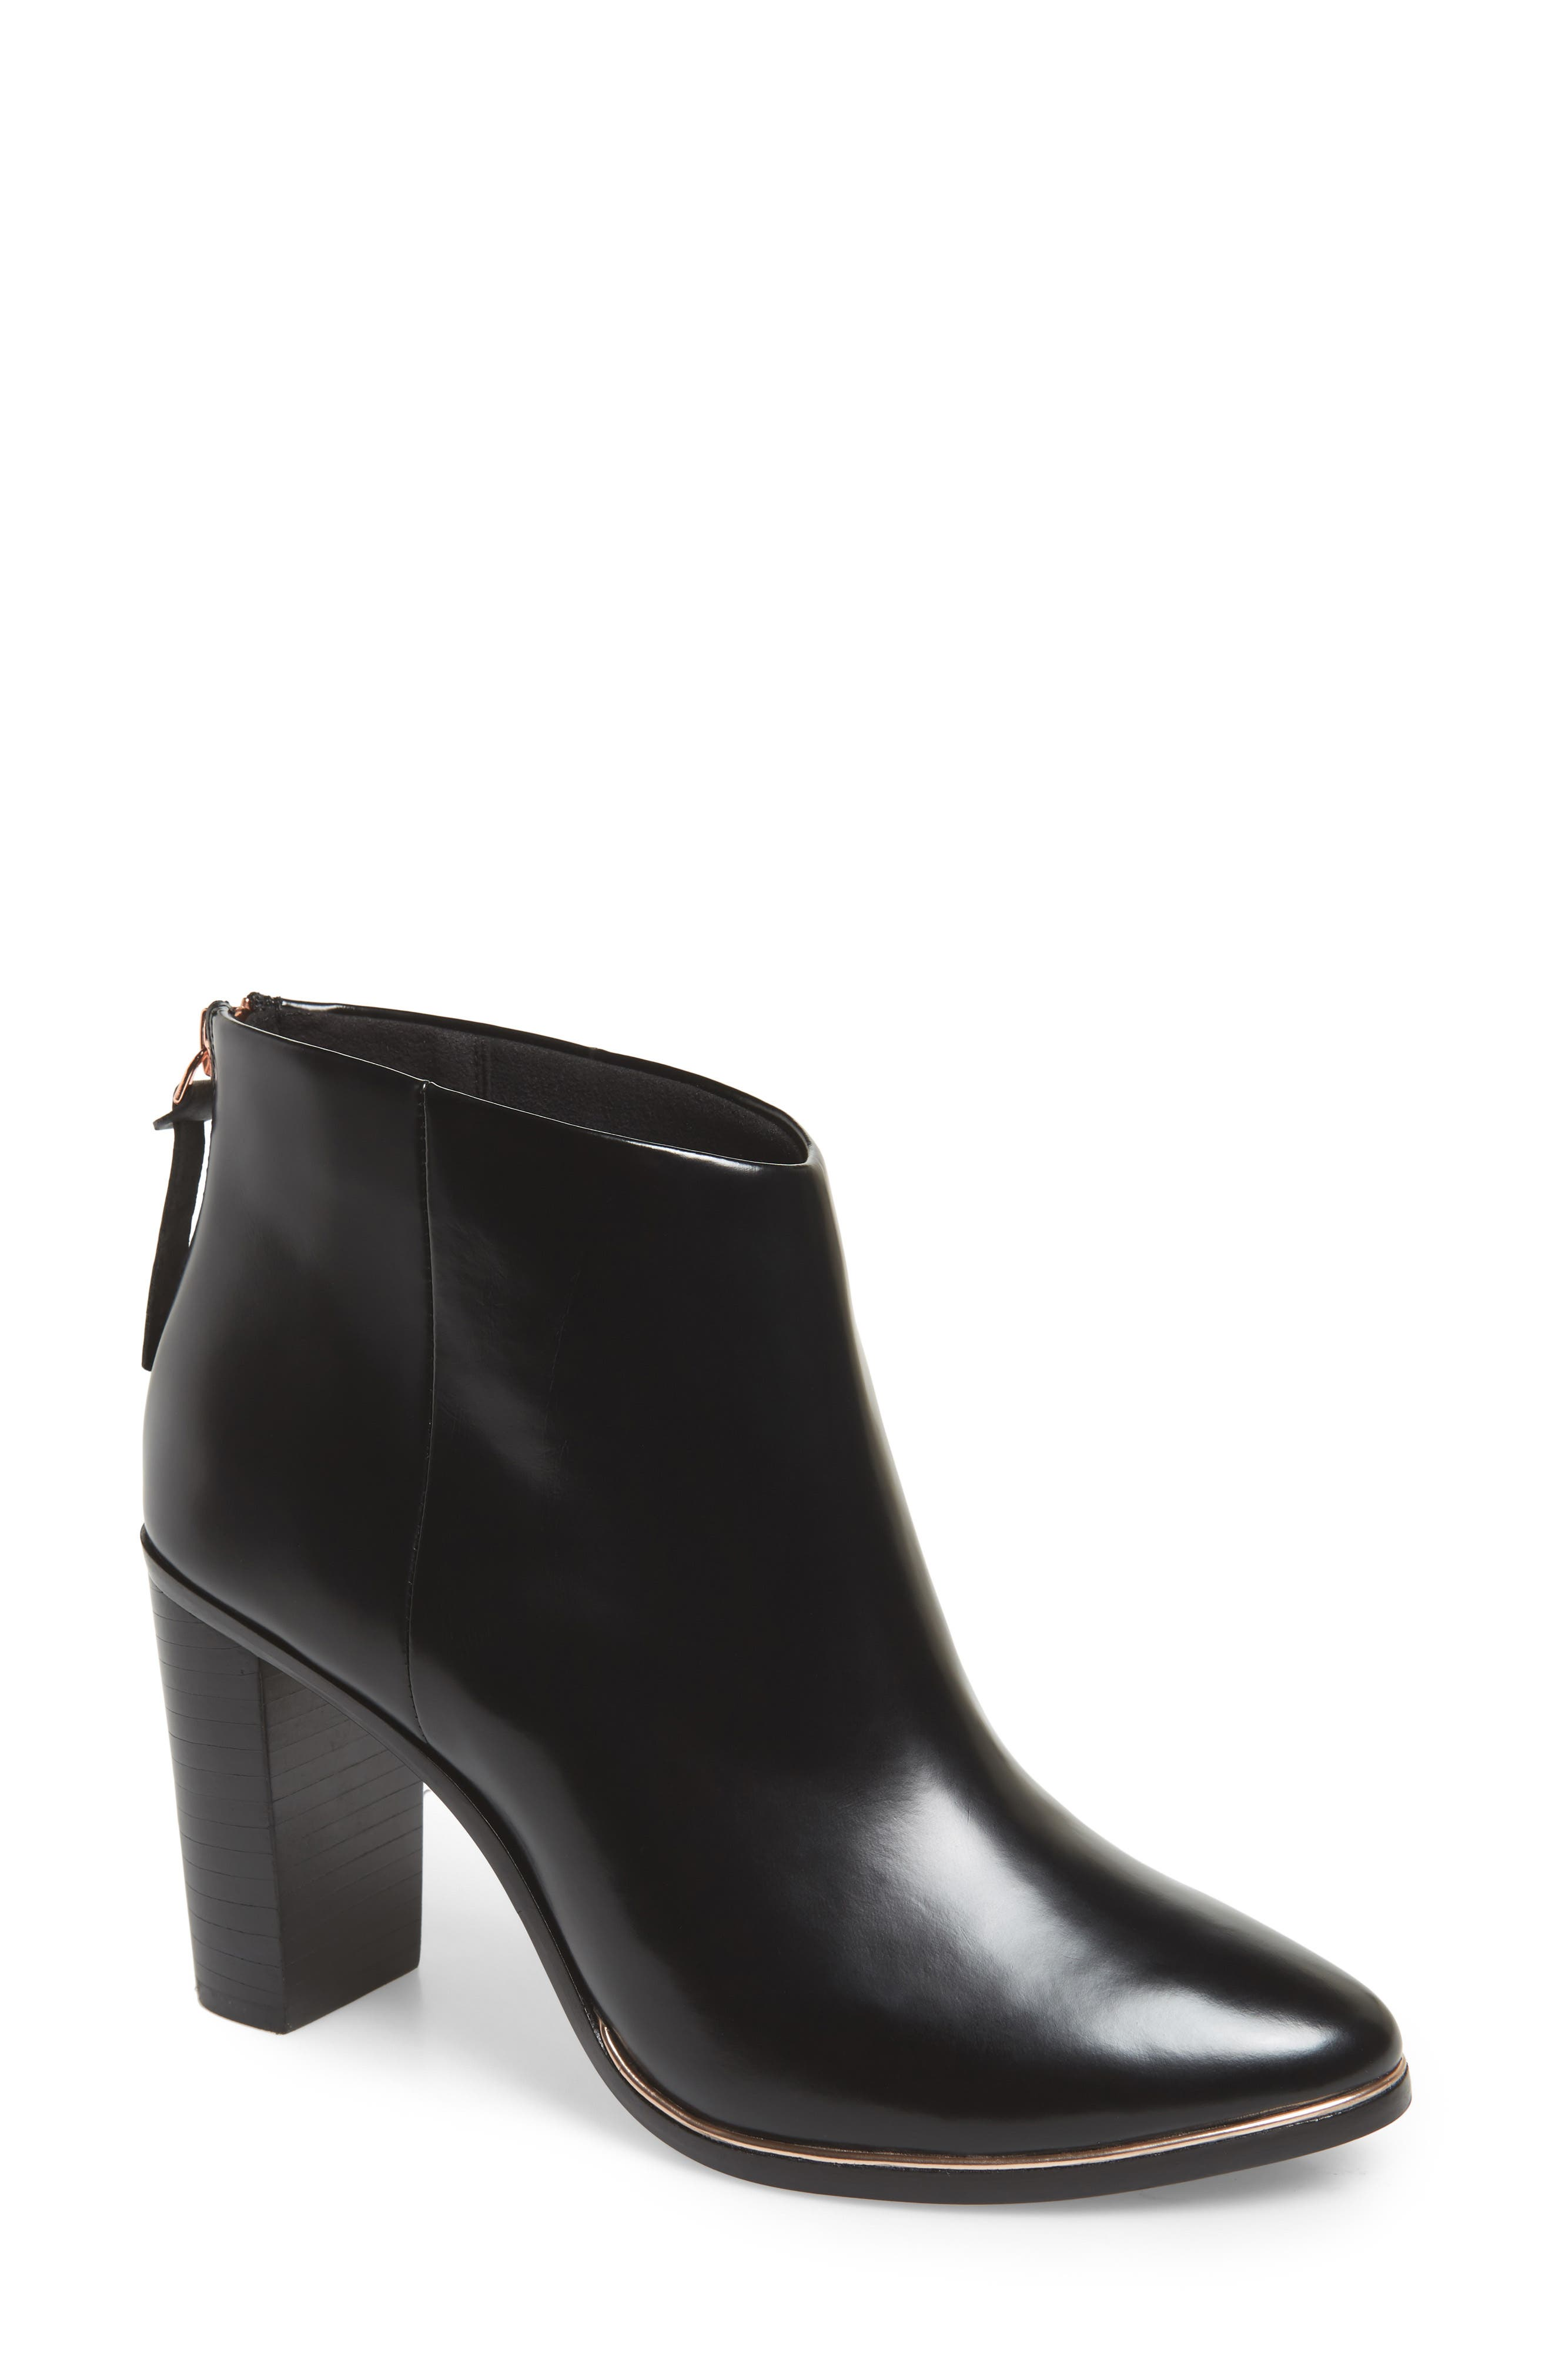 Vaully Bootie,                         Main,                         color, BLACK LEATHER